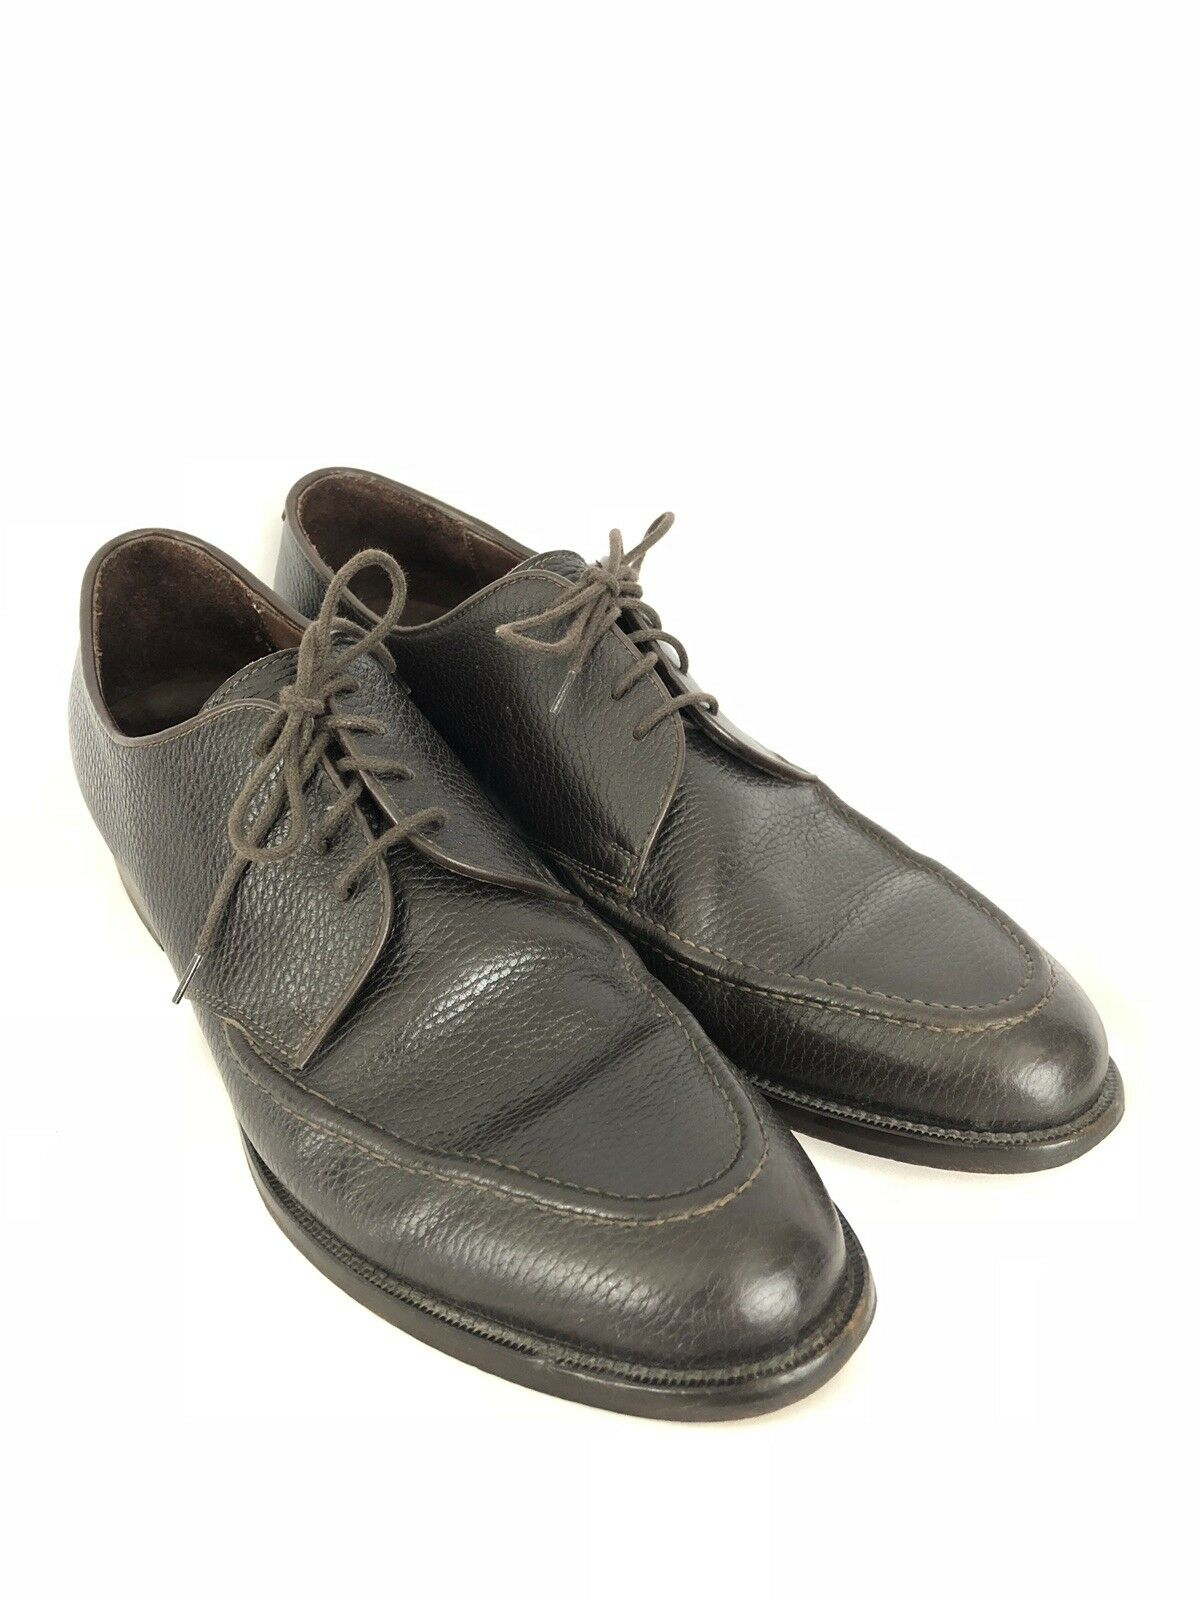 E.T. Wright Uomo marrone Pebble Pelle Lace Up Oxford Scarpe 11.5 AA Narrow EUC